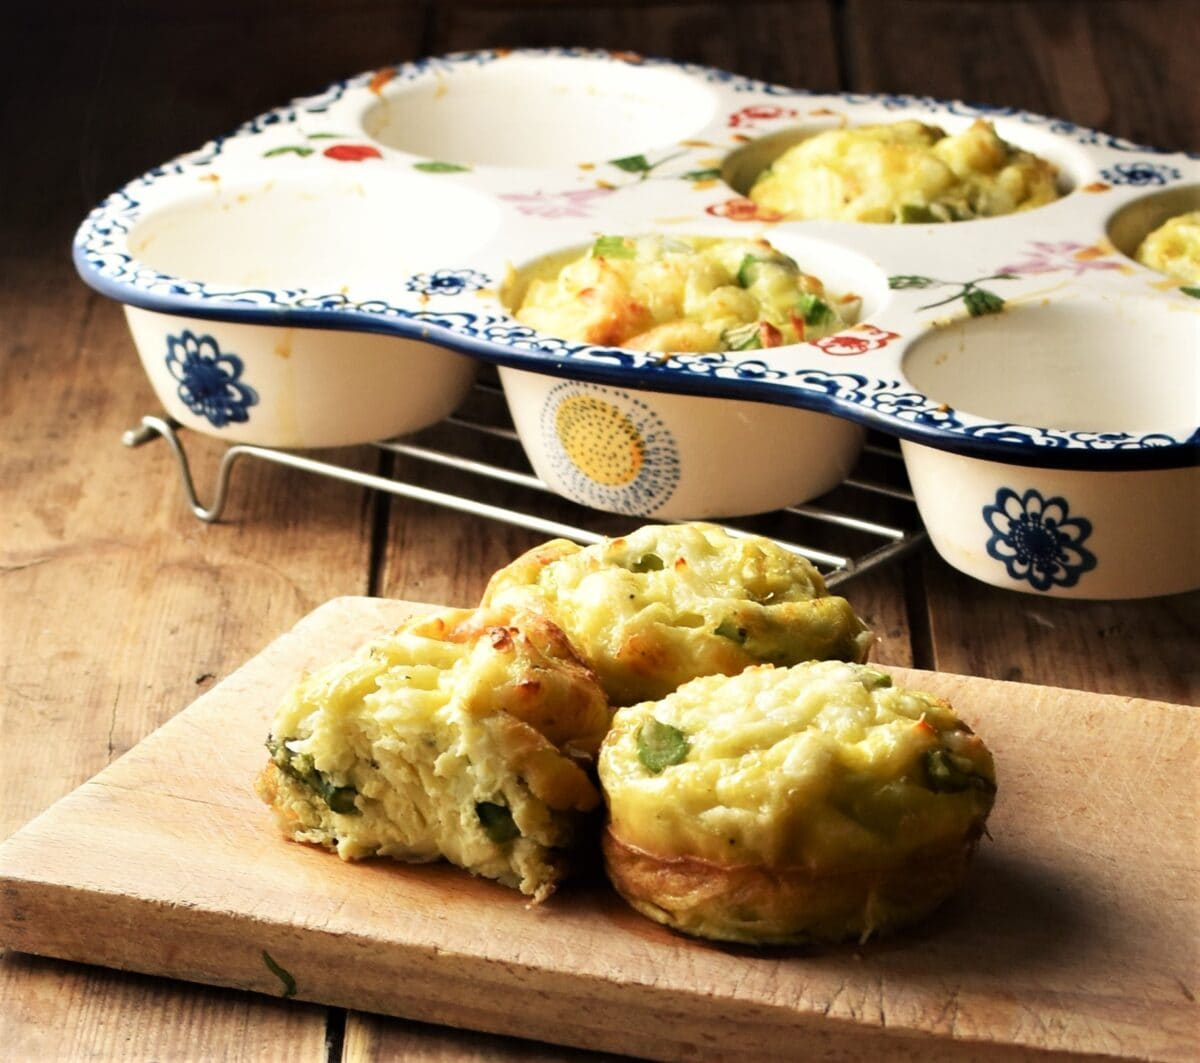 Side view of egg asparagus muffins on top of wooden board, with white ceramic muffin pan with blue flowery pattern in background.